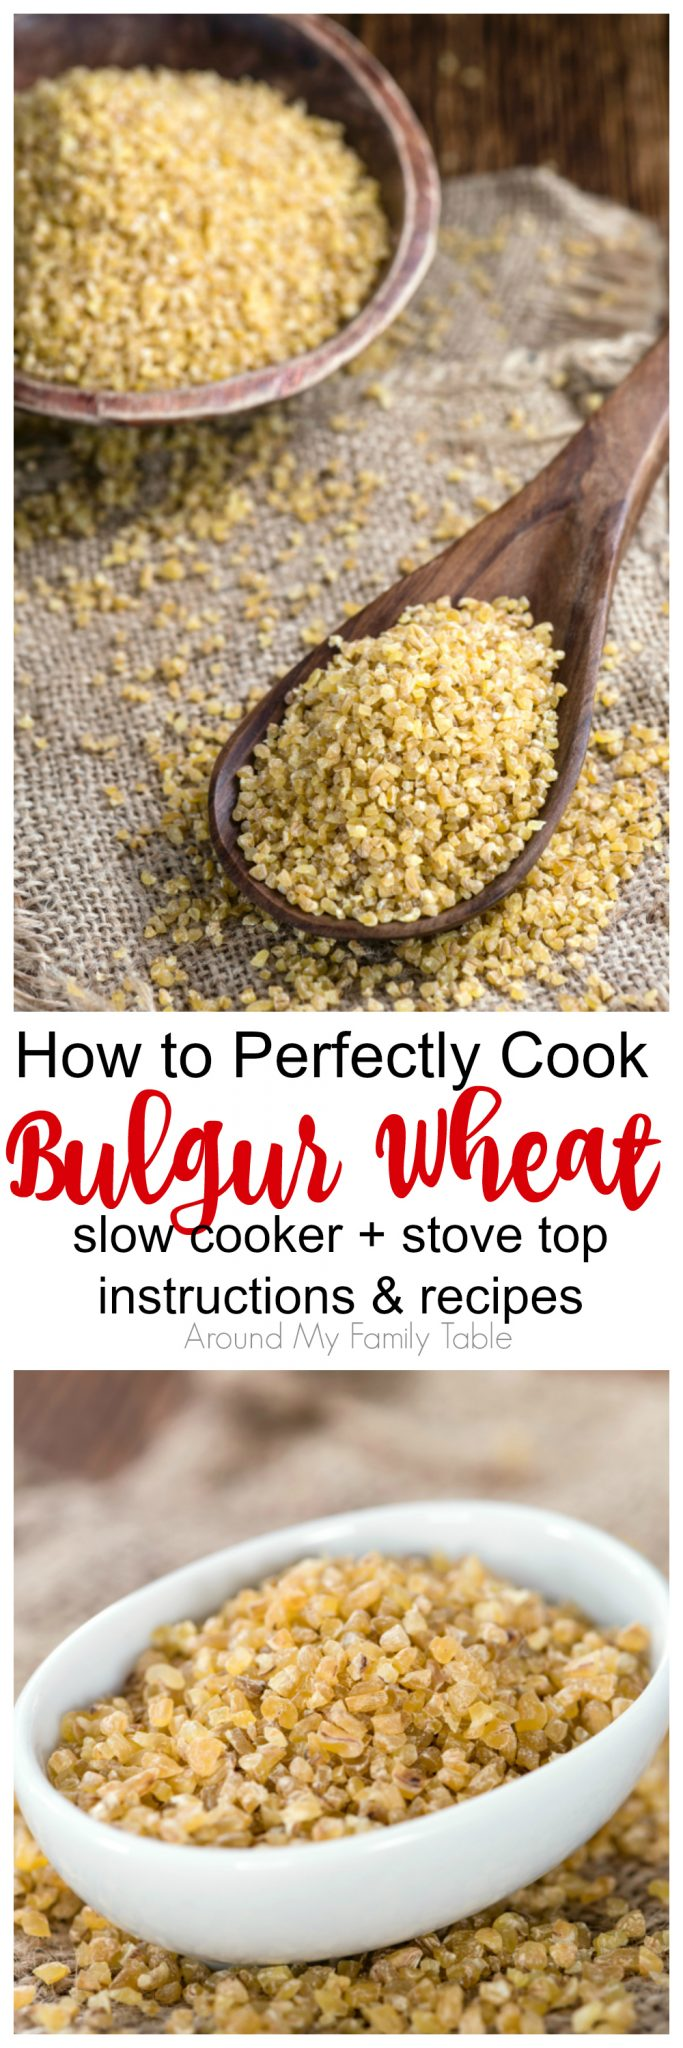 Bulgur Wheat is one of the easiest grains to cook and super simple for swapping out other grains. Learning How to Cook Bulgur Wheat properly has really opened up a whole new world of grains for my family.